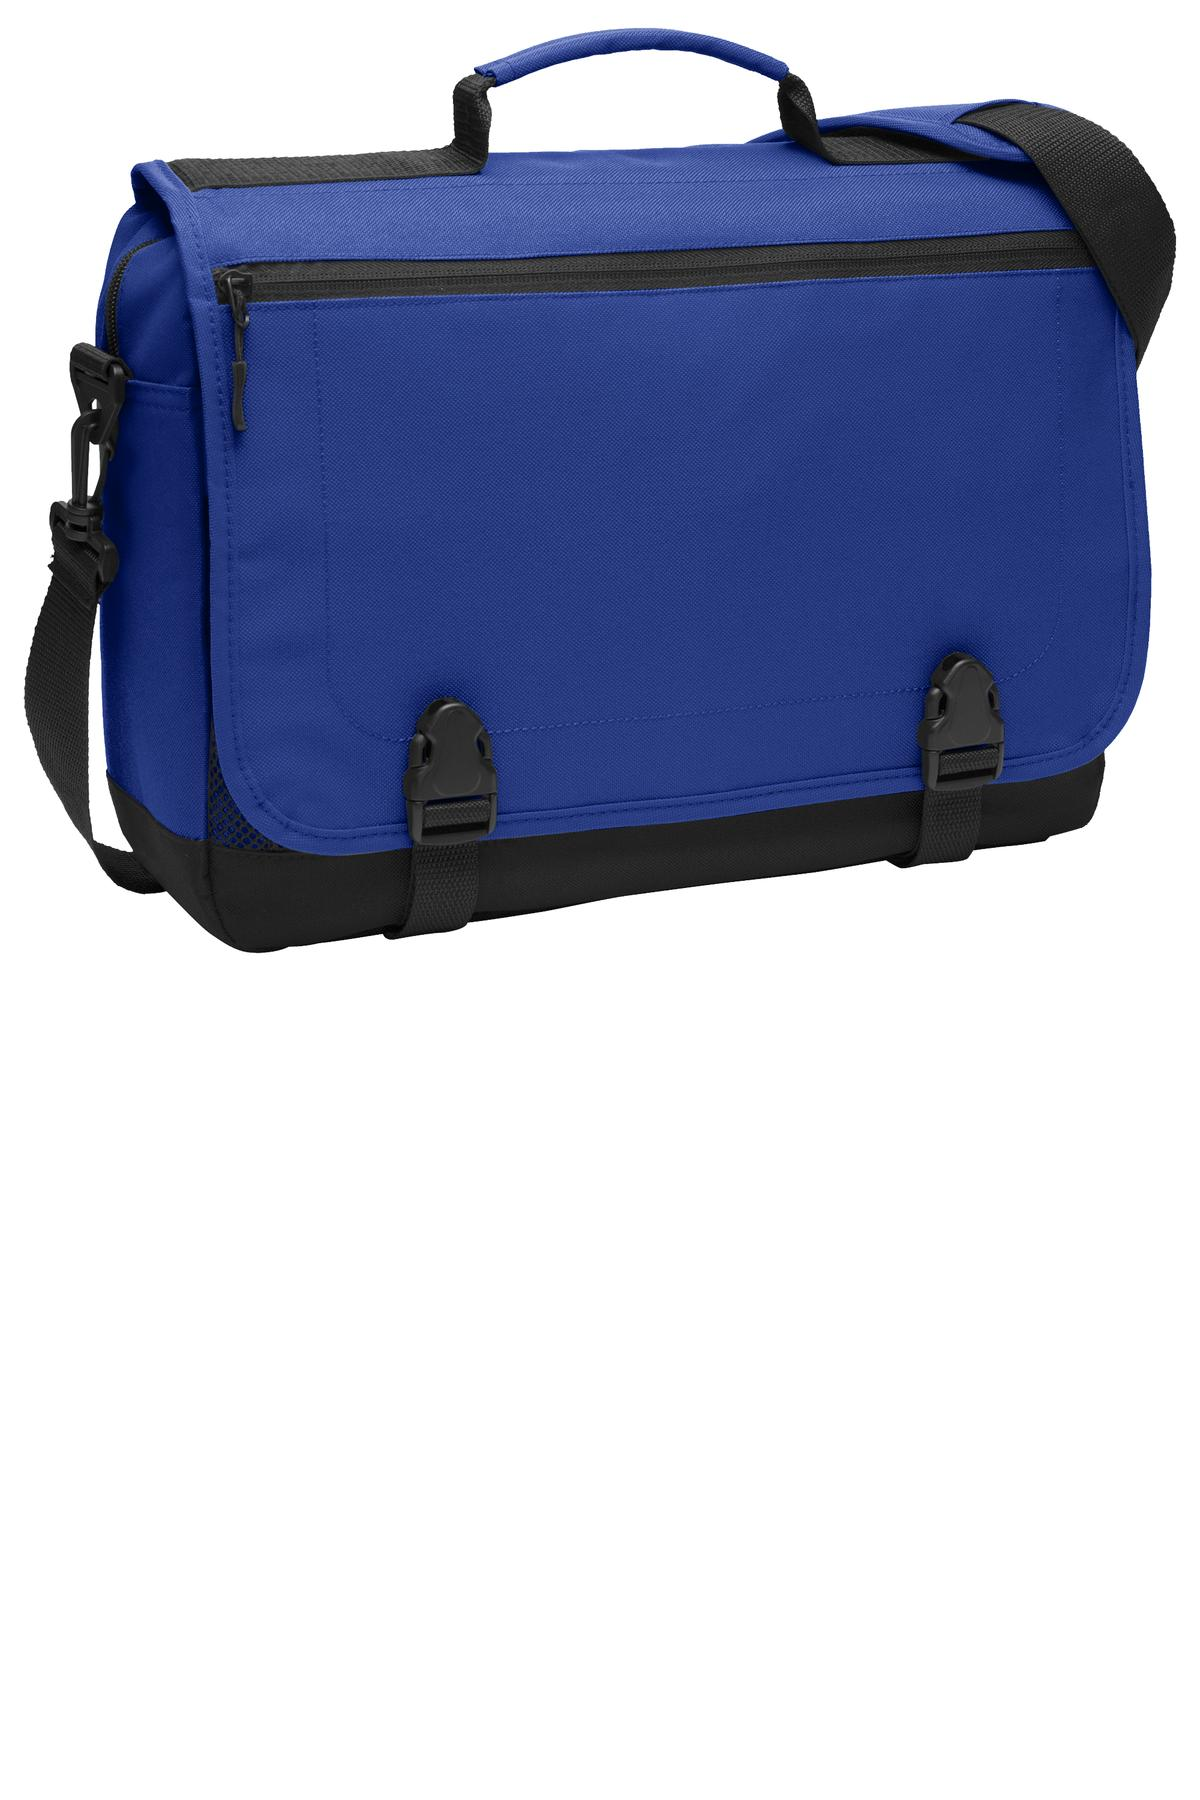 Port Authority ®  Messenger Briefcase. BG304 - Twilight Blue